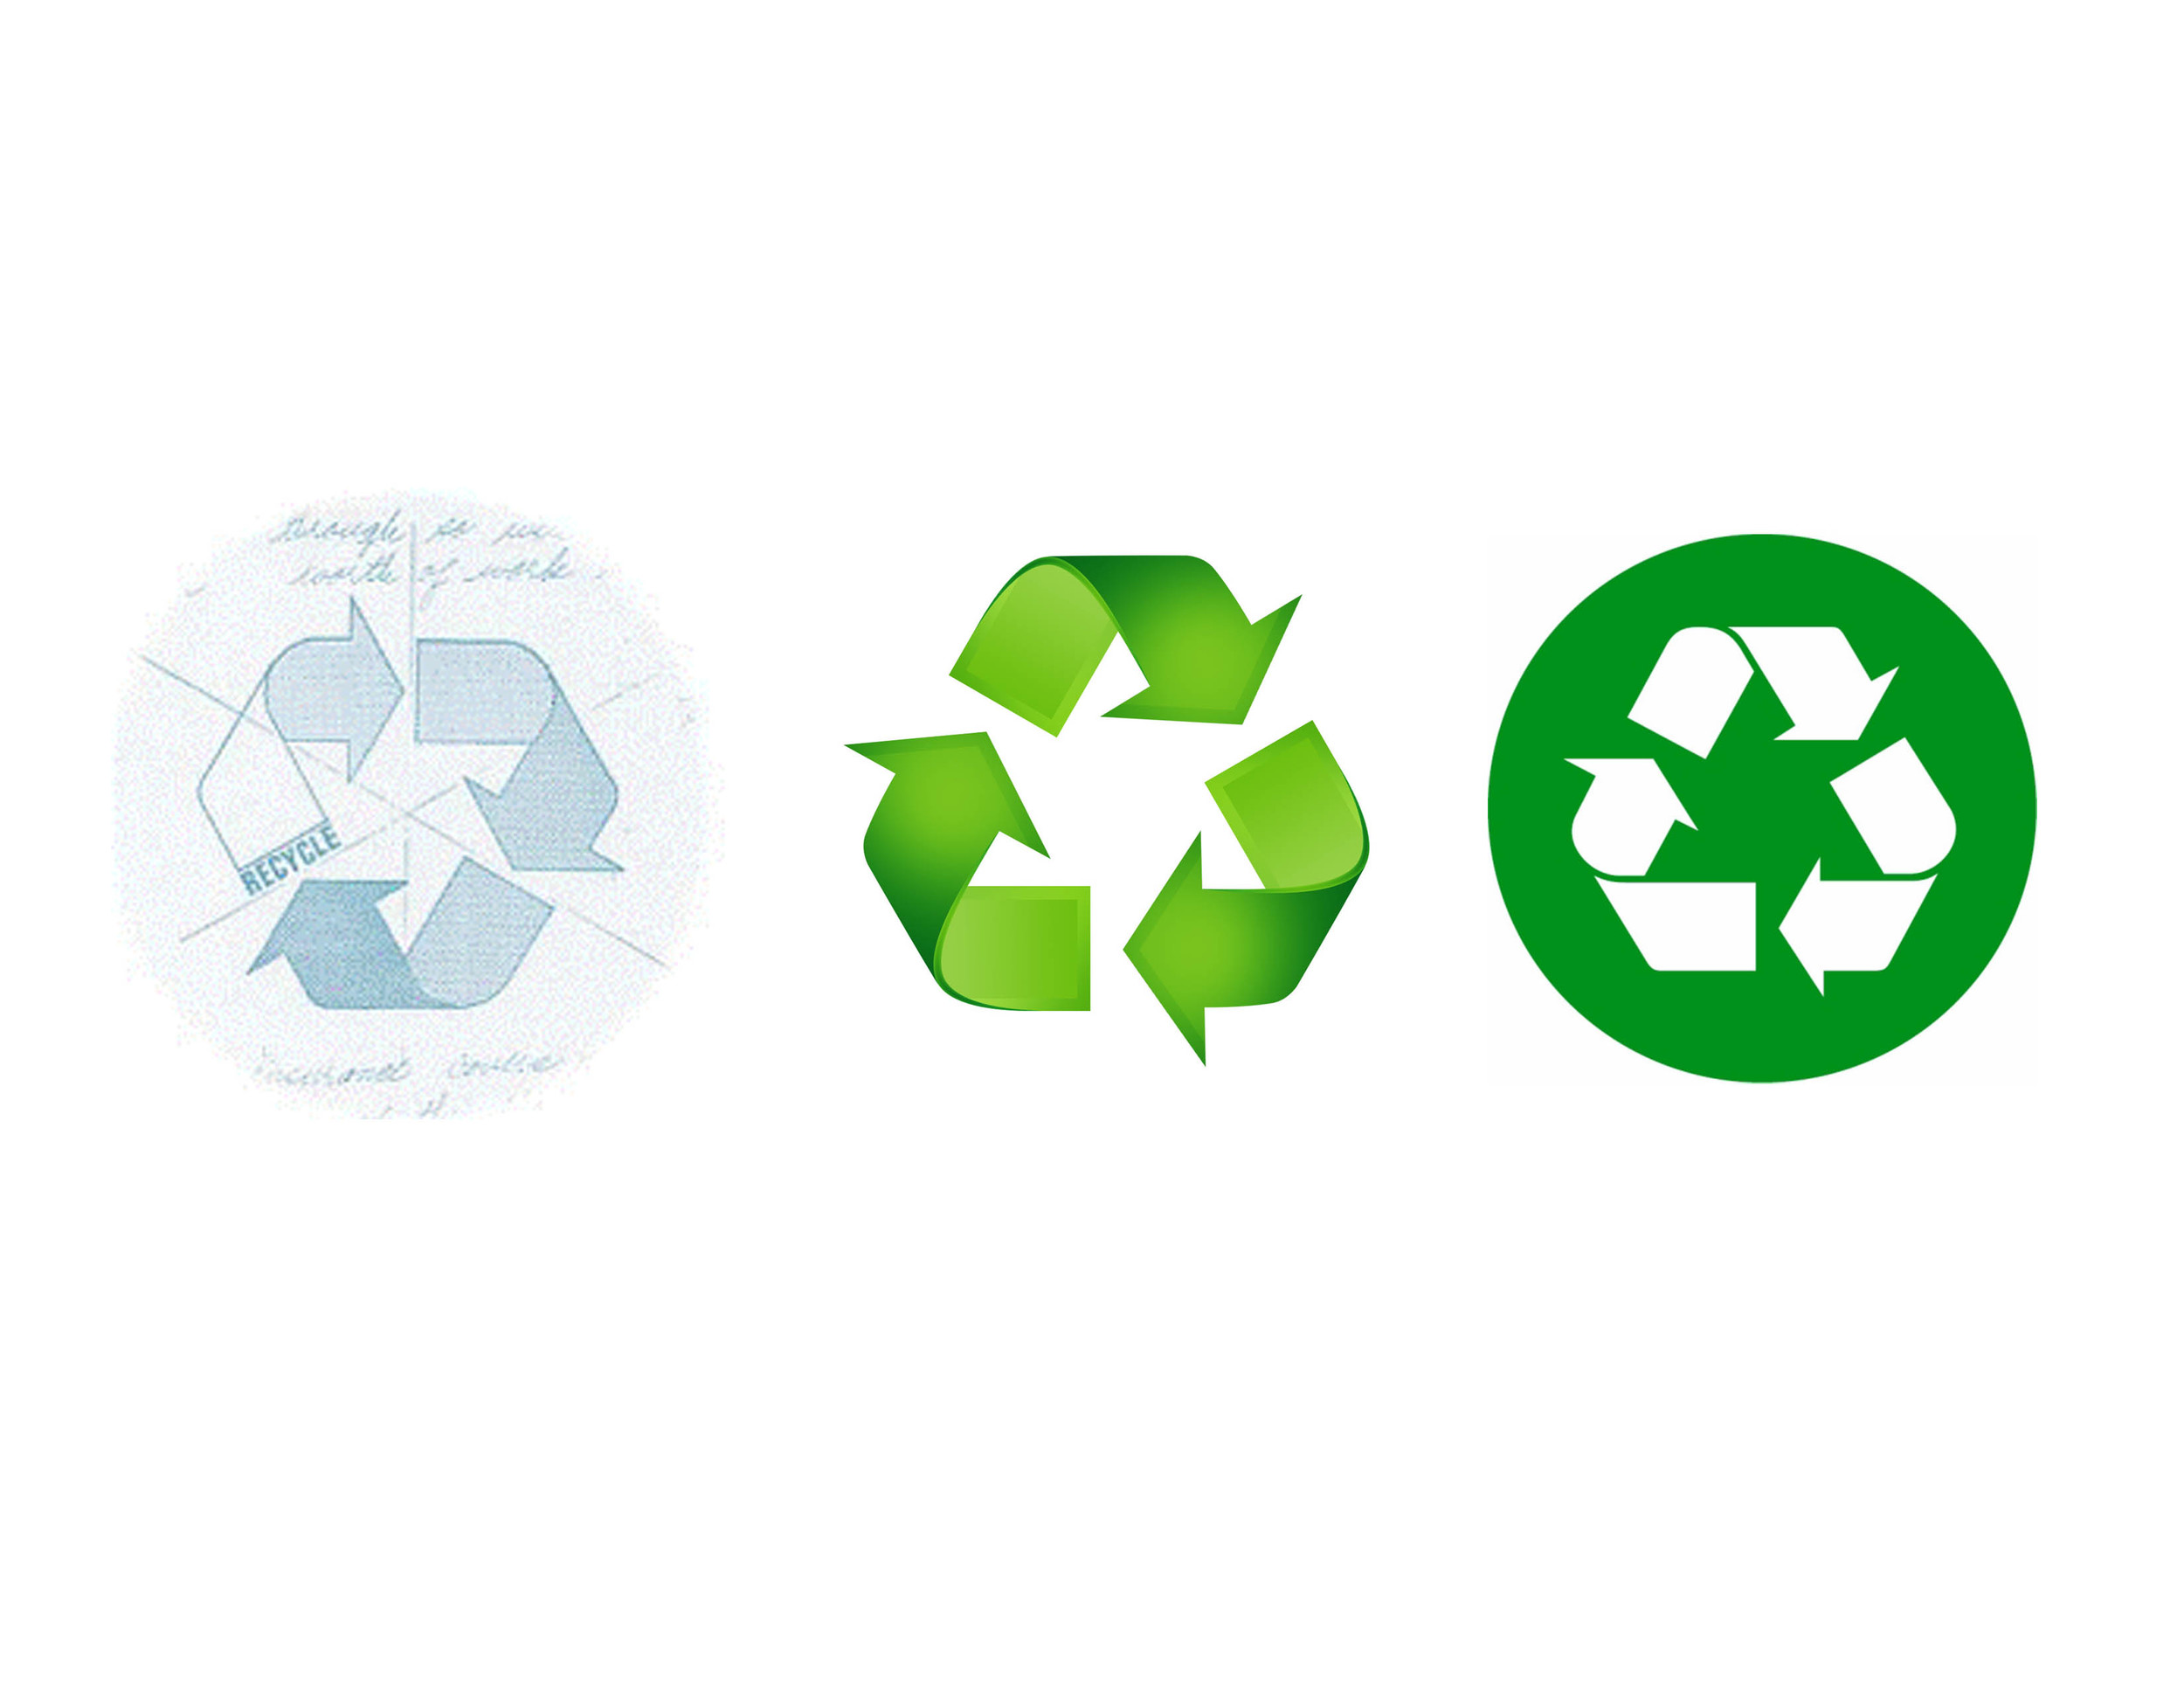 The first image is Anderson's original symbol, and the subsequent images are used world-wide to represent (L) a product can be recycled and (R) a product was made from recycled materials.